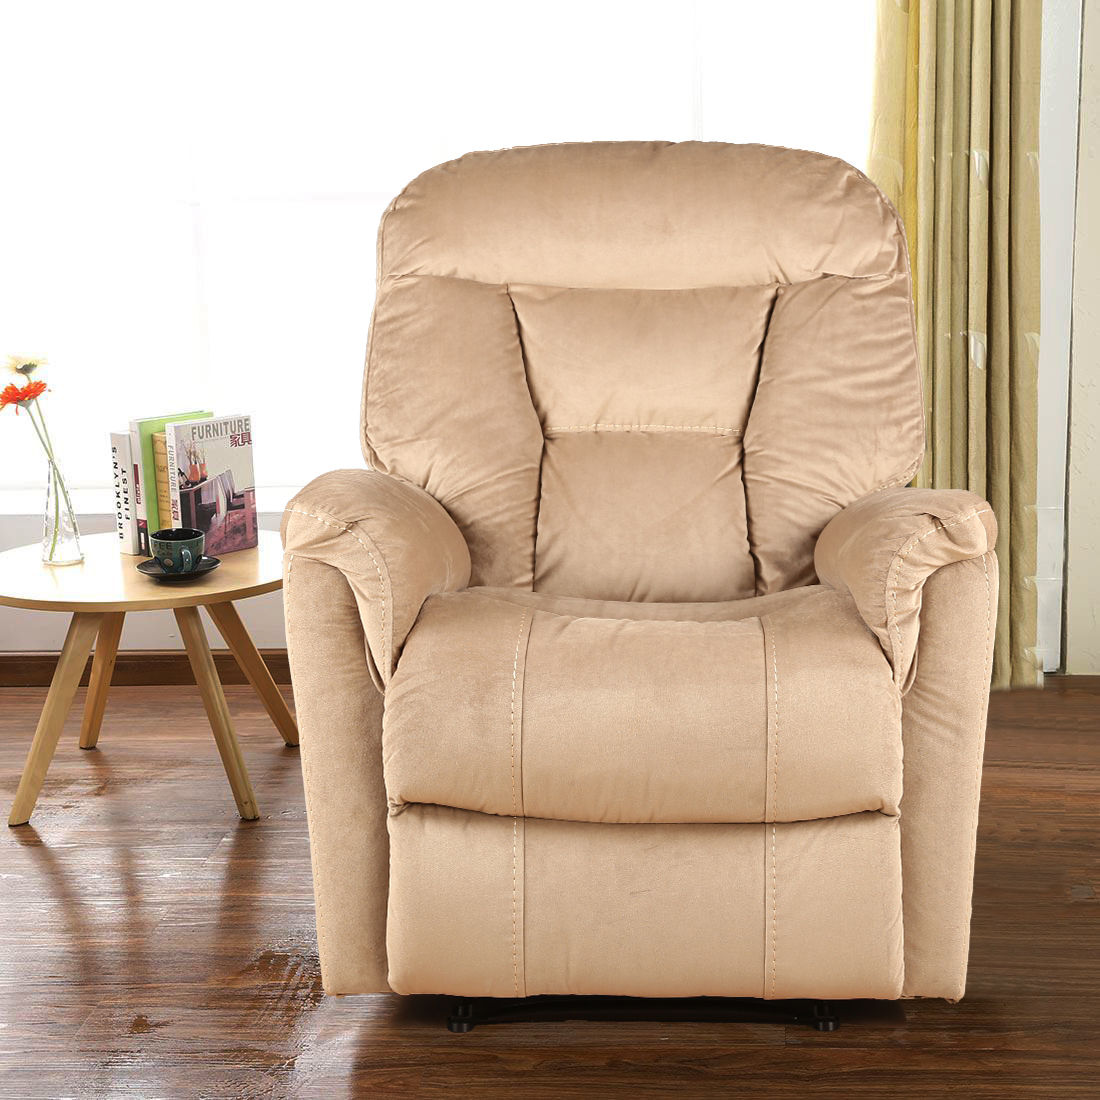 Rubens Fabric Single Seater Recliner in Beige Colour by HomeTown